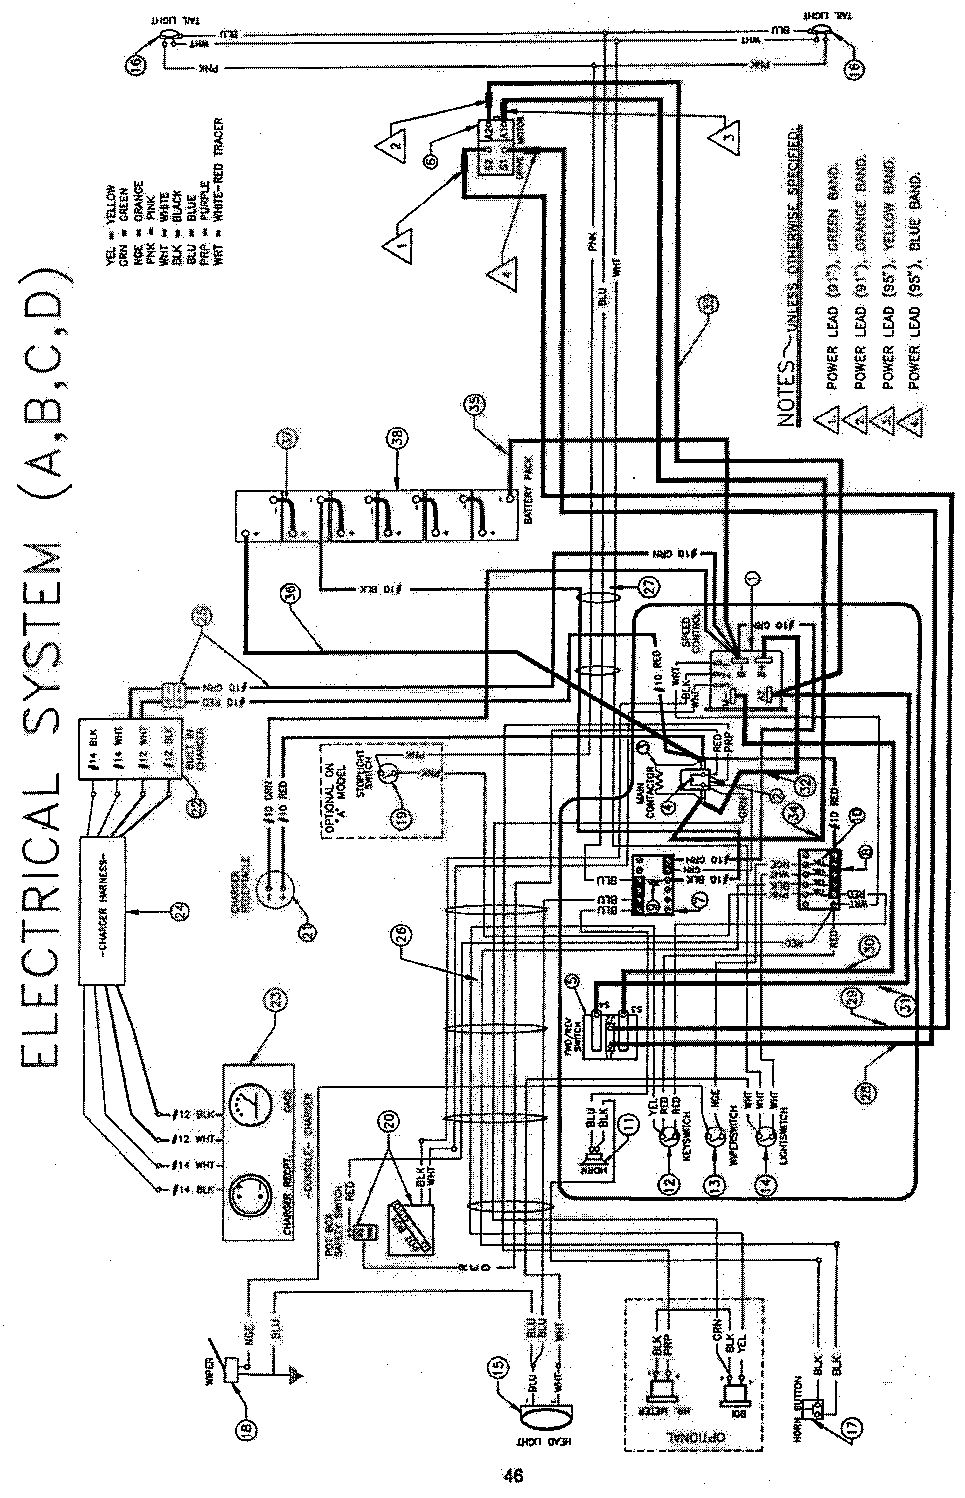 hight resolution of westinghouse golf cart wiring diagram 37 wiring diagram golf cart electric diagrams pdf yamaha golf cart wiring diagram